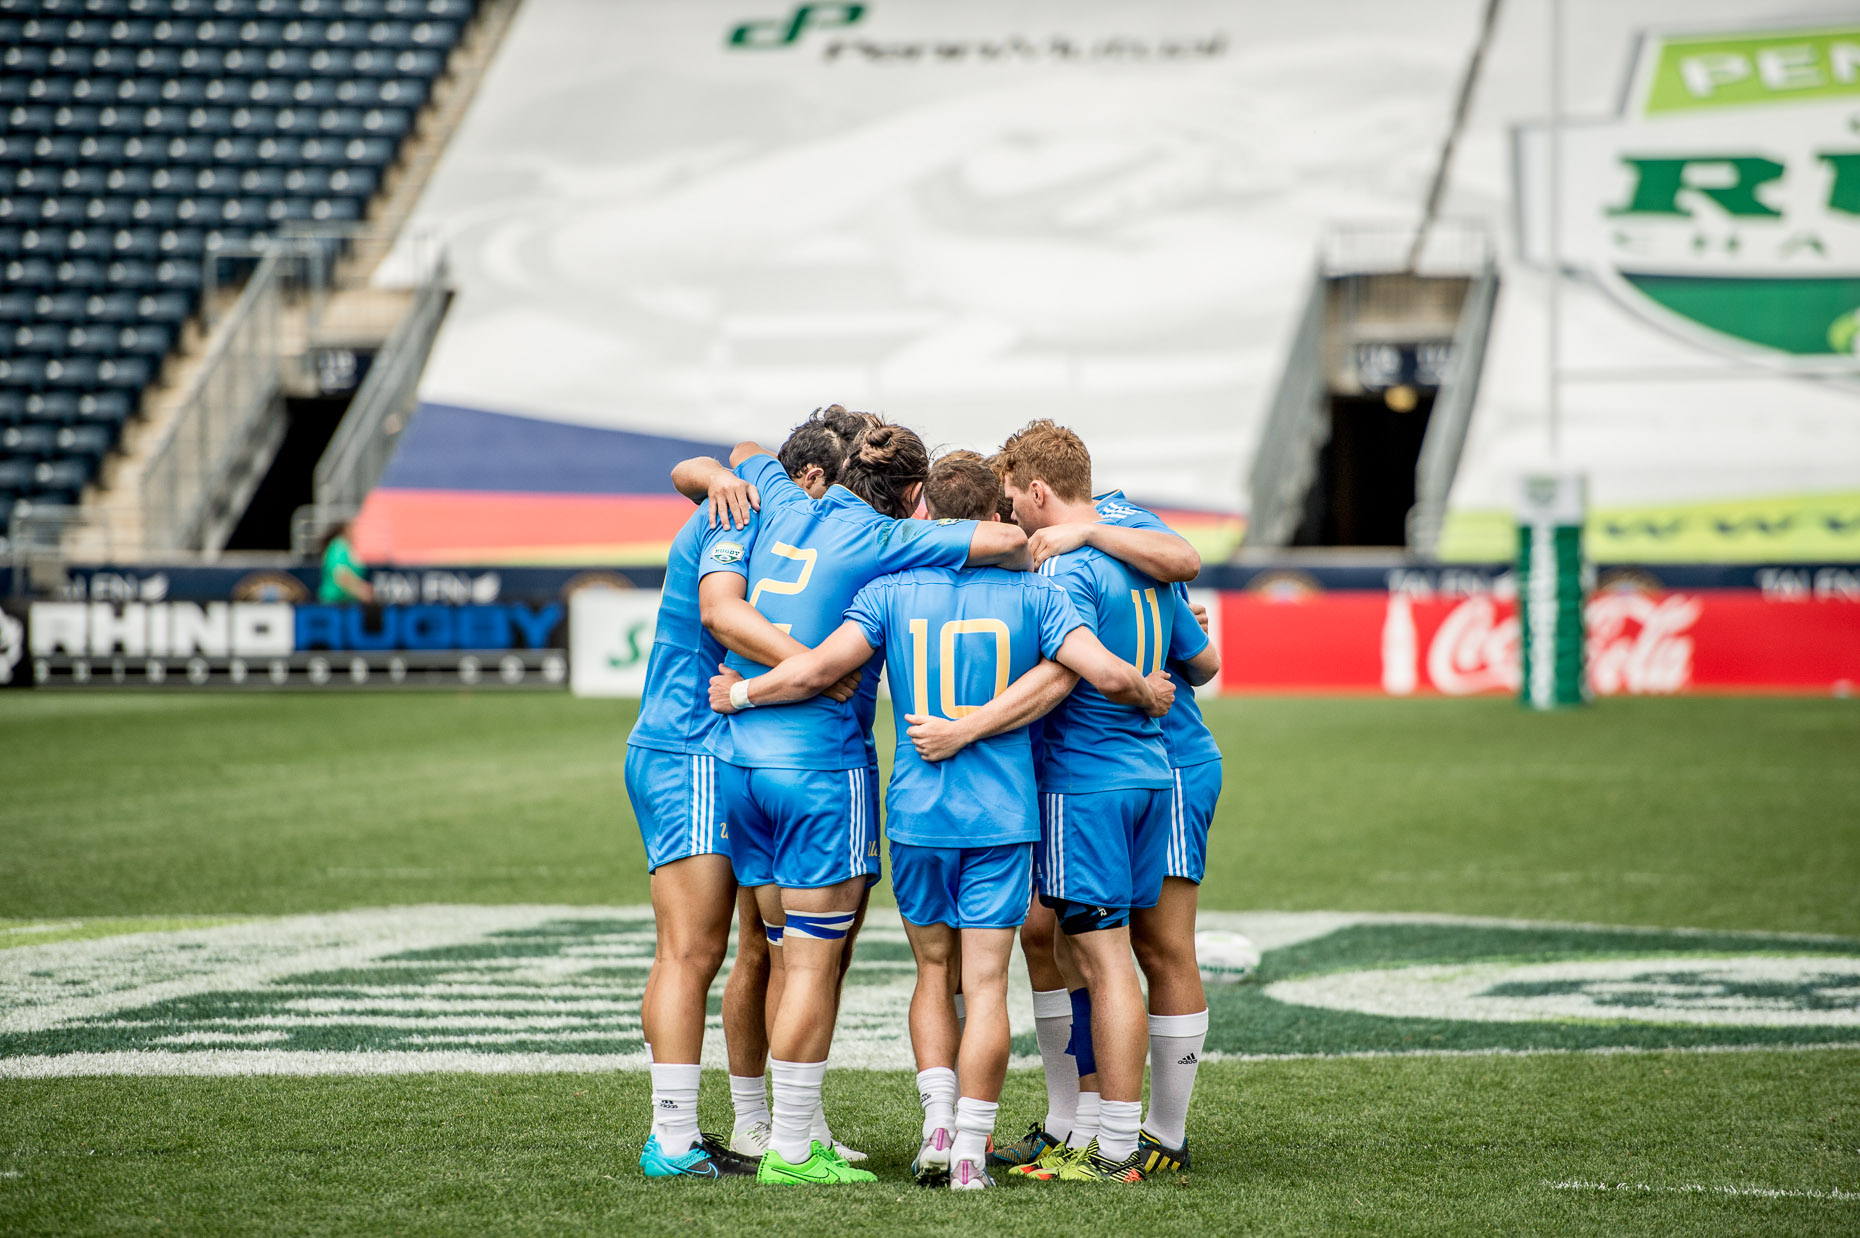 Rugby Lifestyle Photographer - Team huddle - Sports